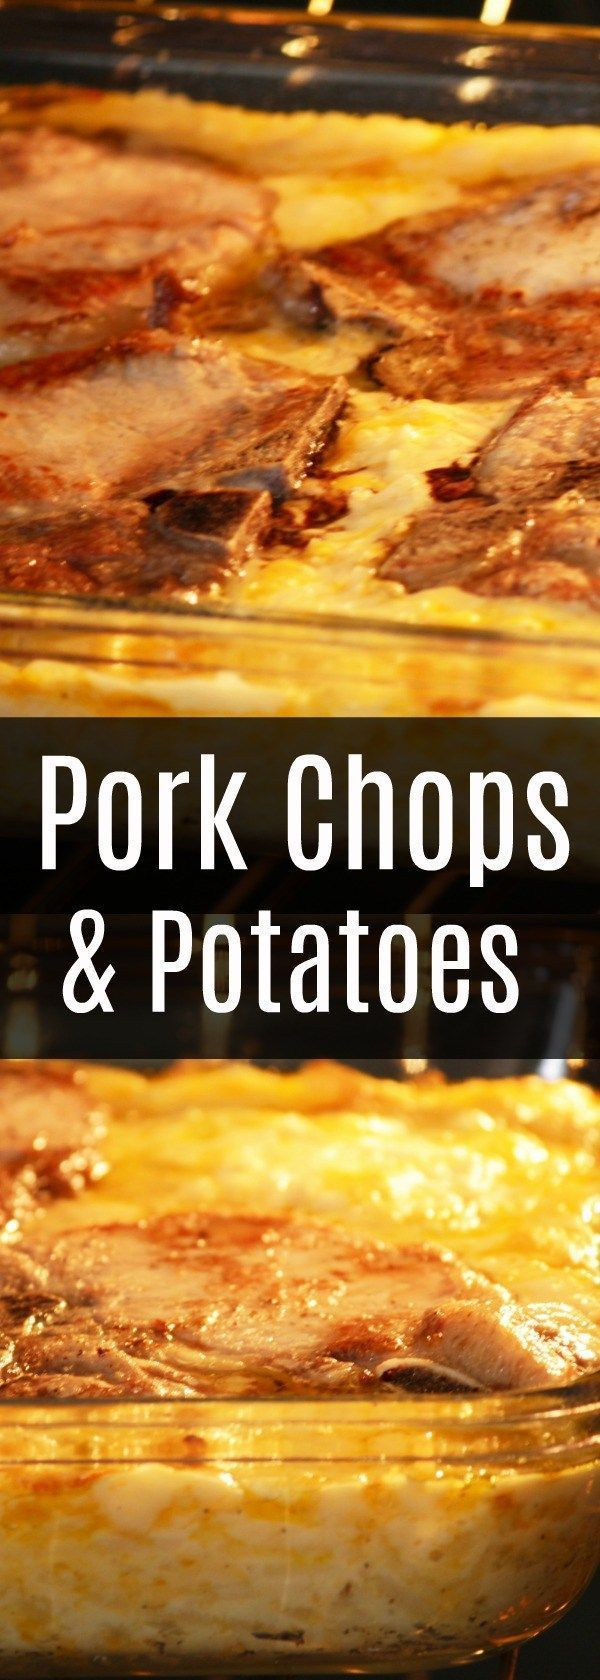 Looking for easy pork chop recipes? This is my favorite way to make pork chops in the oven!